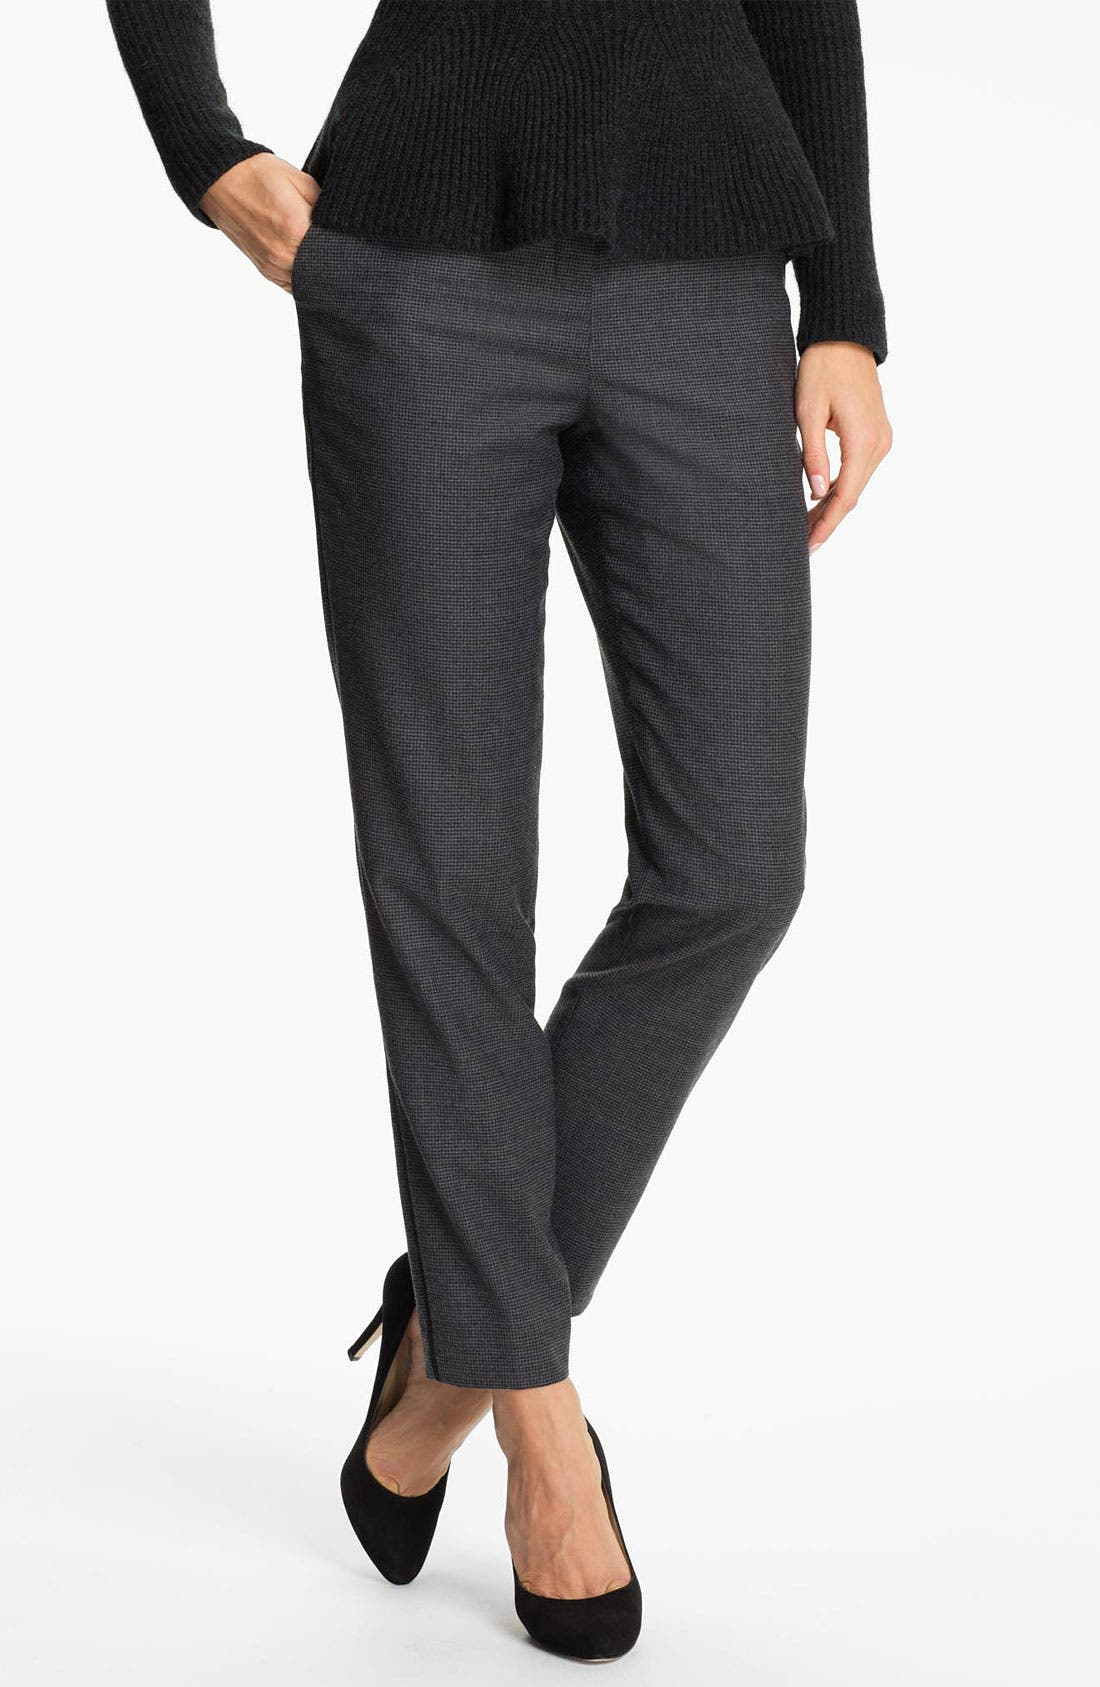 Main Image - Ted Baker London 'Rhit' Wool Blend Ankle Trousers